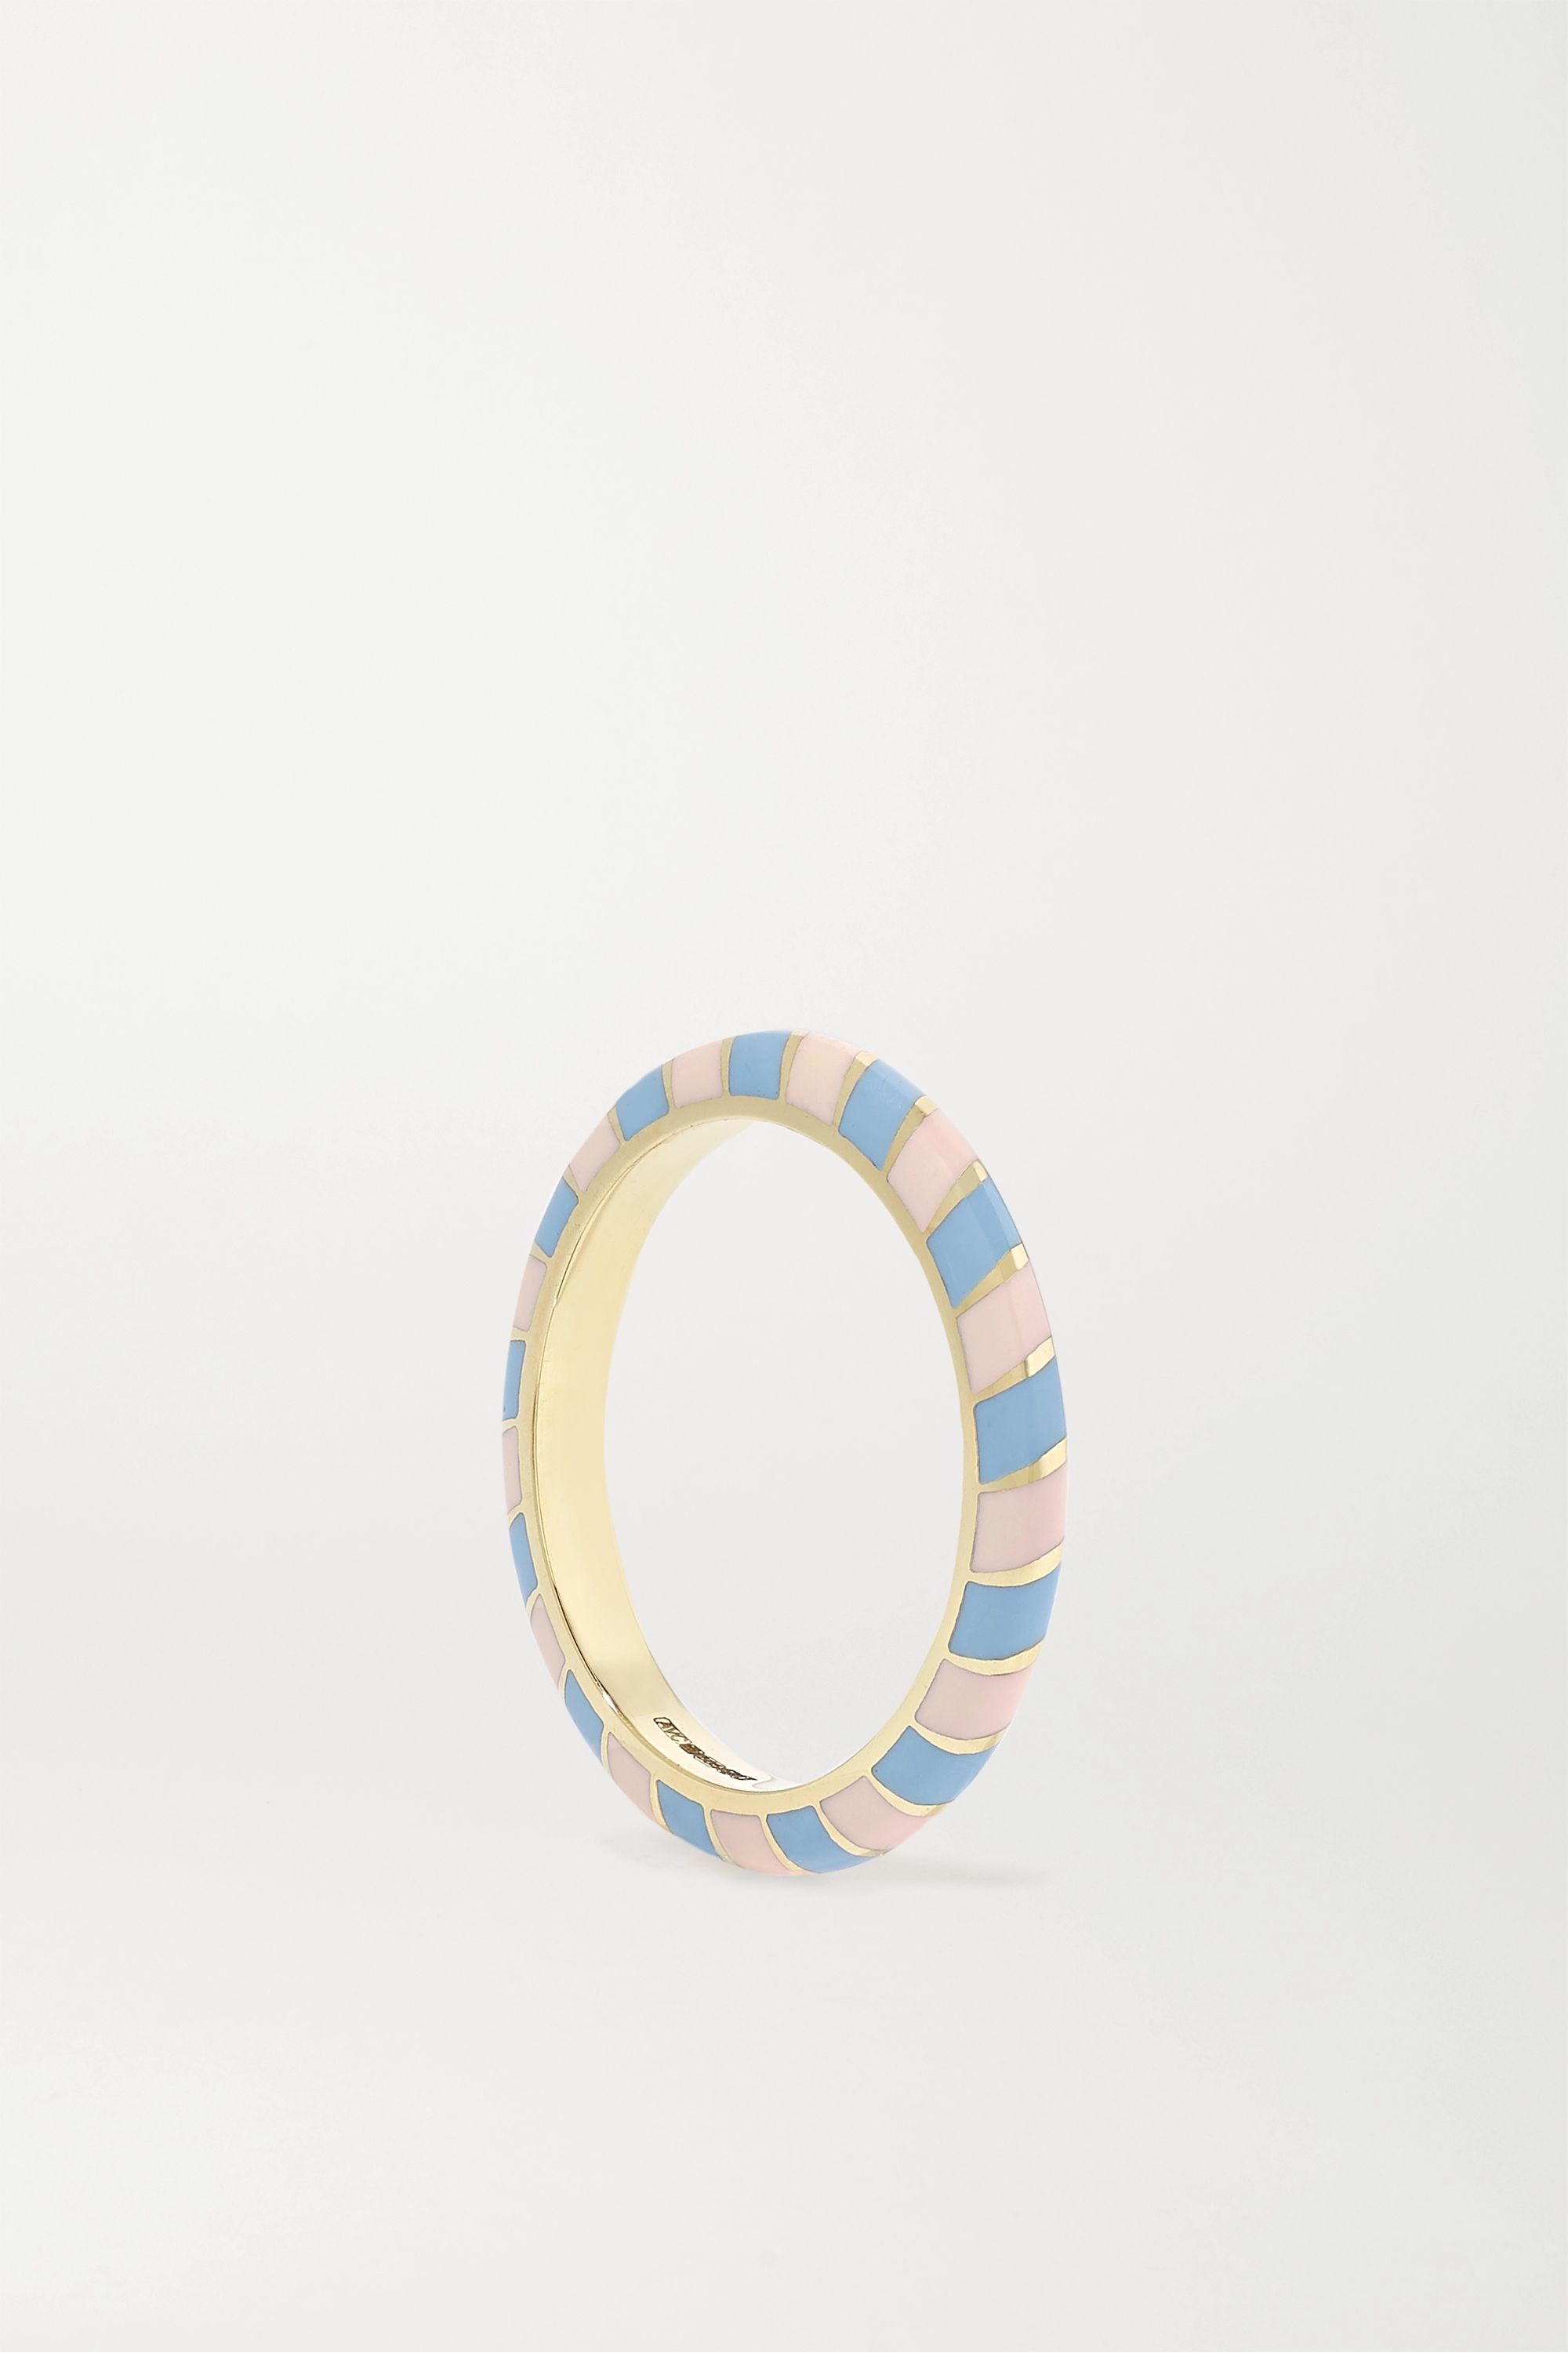 Alice Cicolini Memphis Candy 14-karat gold and enamel ring